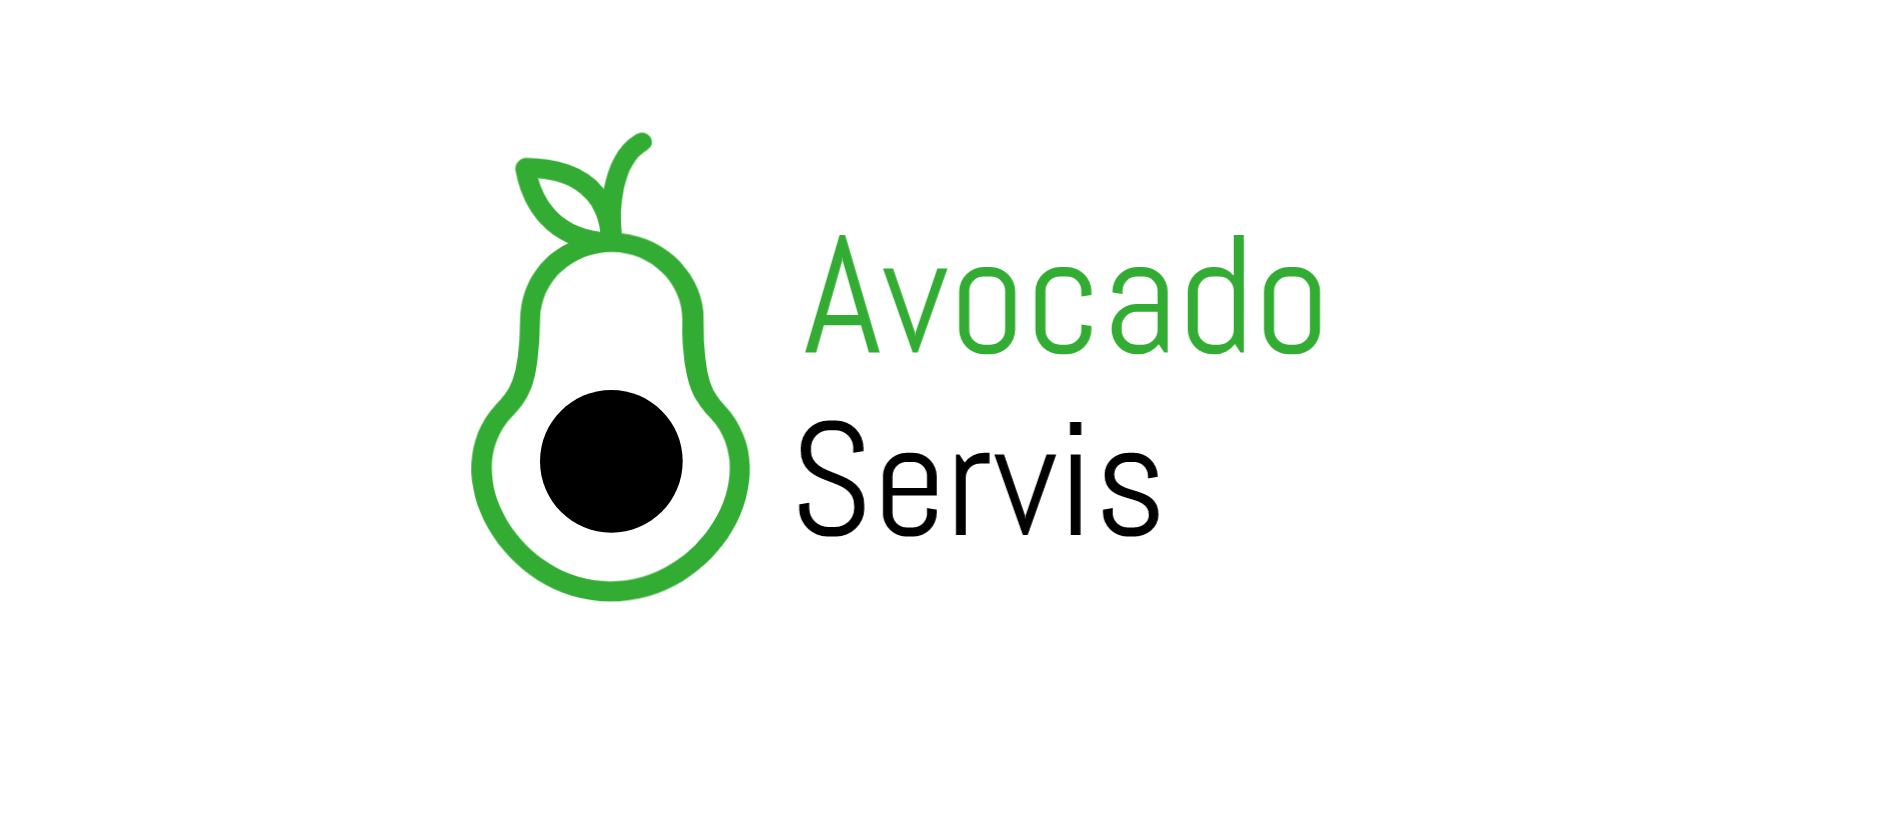 Avocado Servis